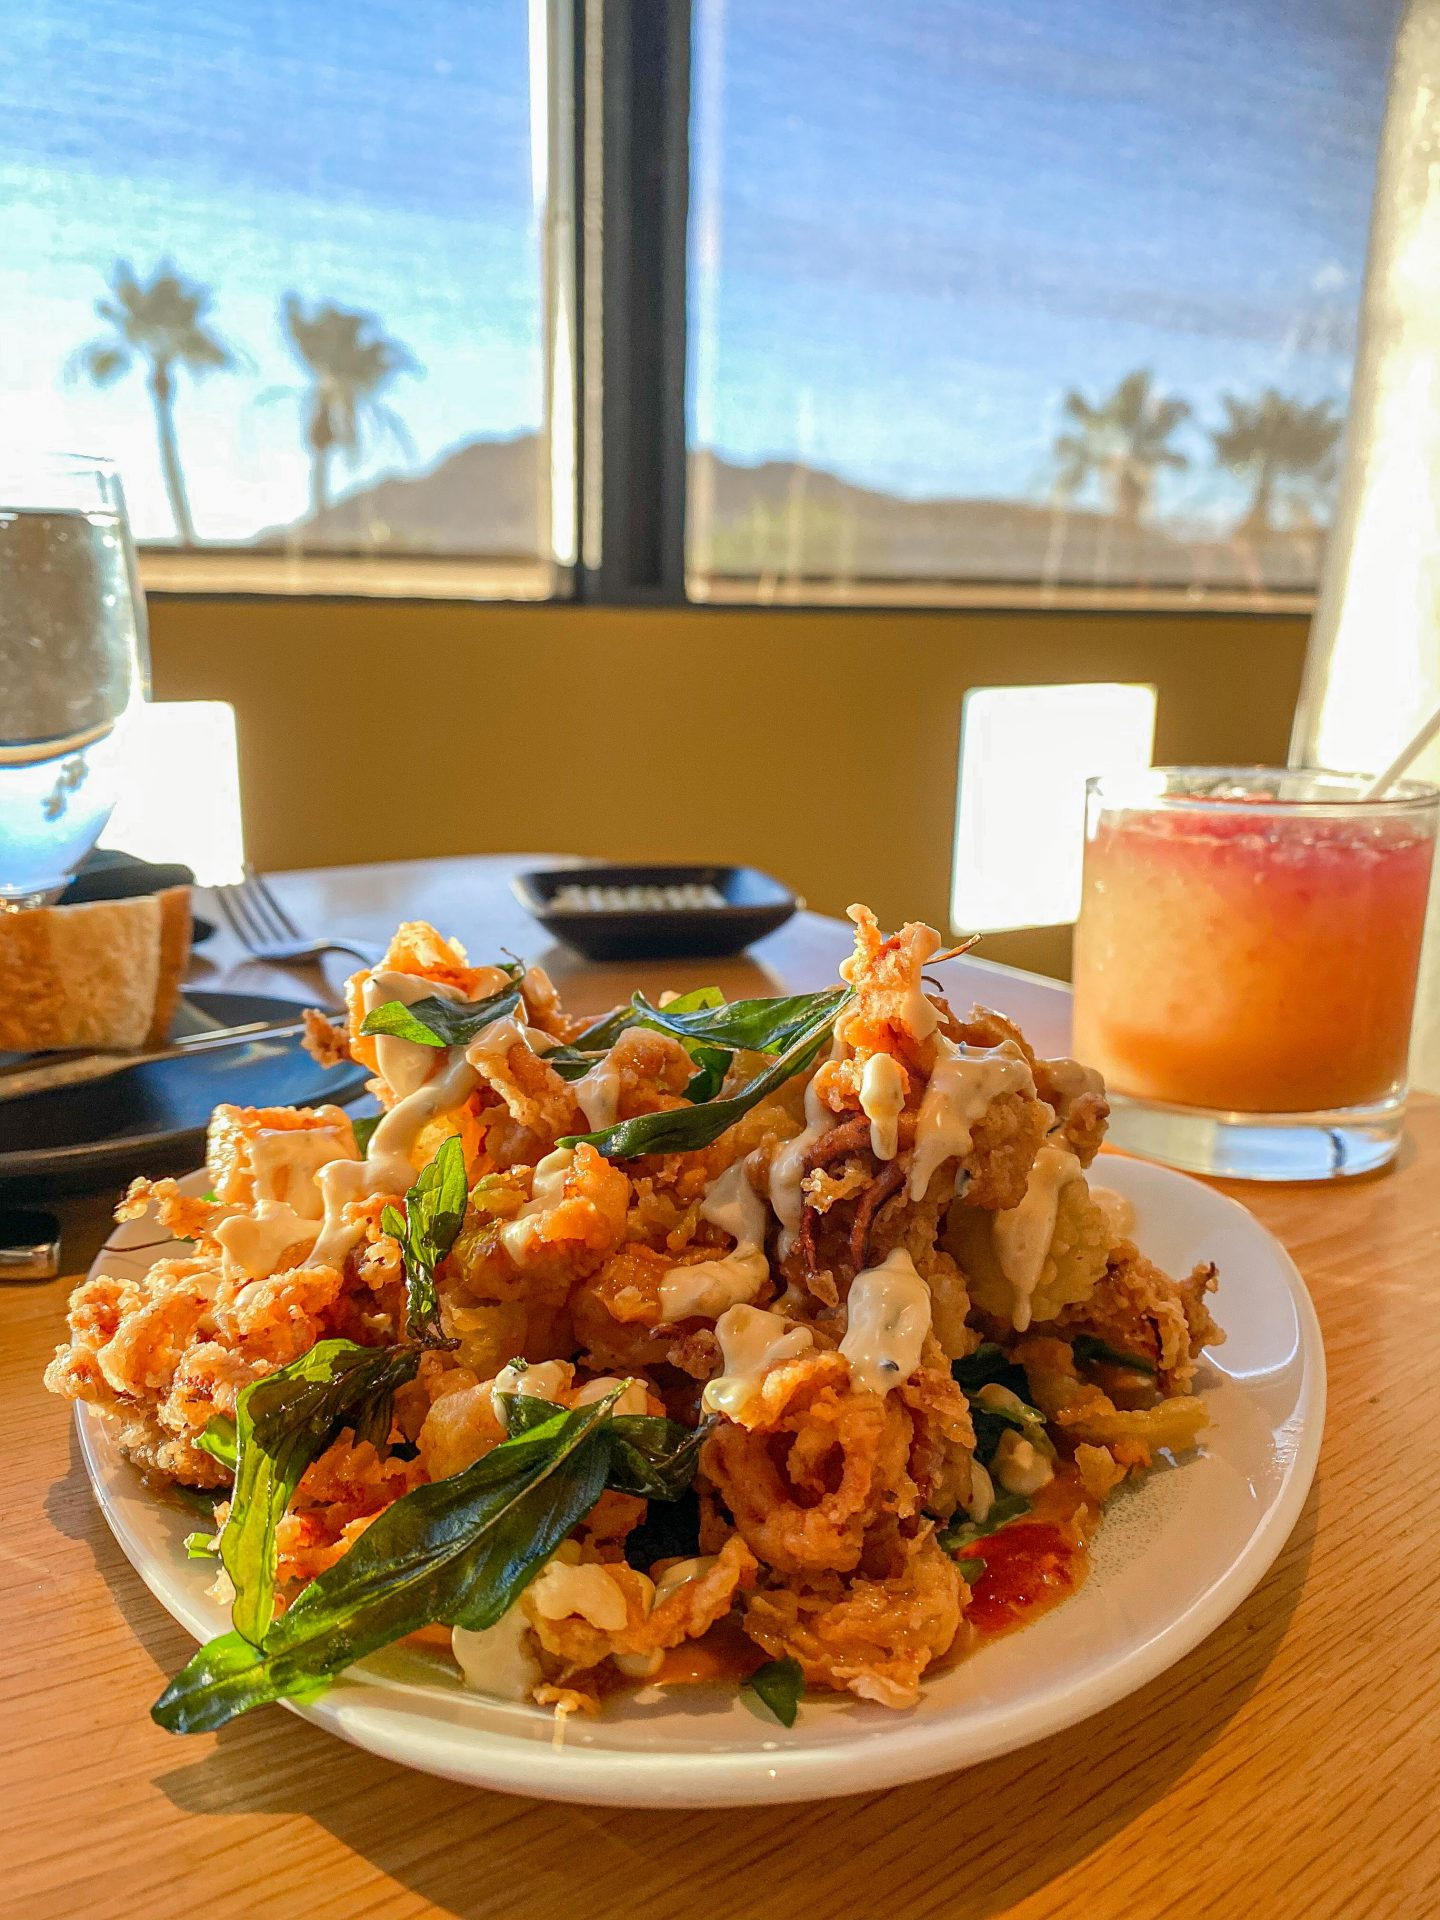 elements, celebrity chef, sanctuary, asian, lobster macaroni, the best dinner in scottsdale, sunset, margarita, food, honeymoon, the best trip, scottsdale travel guide, what to do in scottsdale, ultimate guide, blog